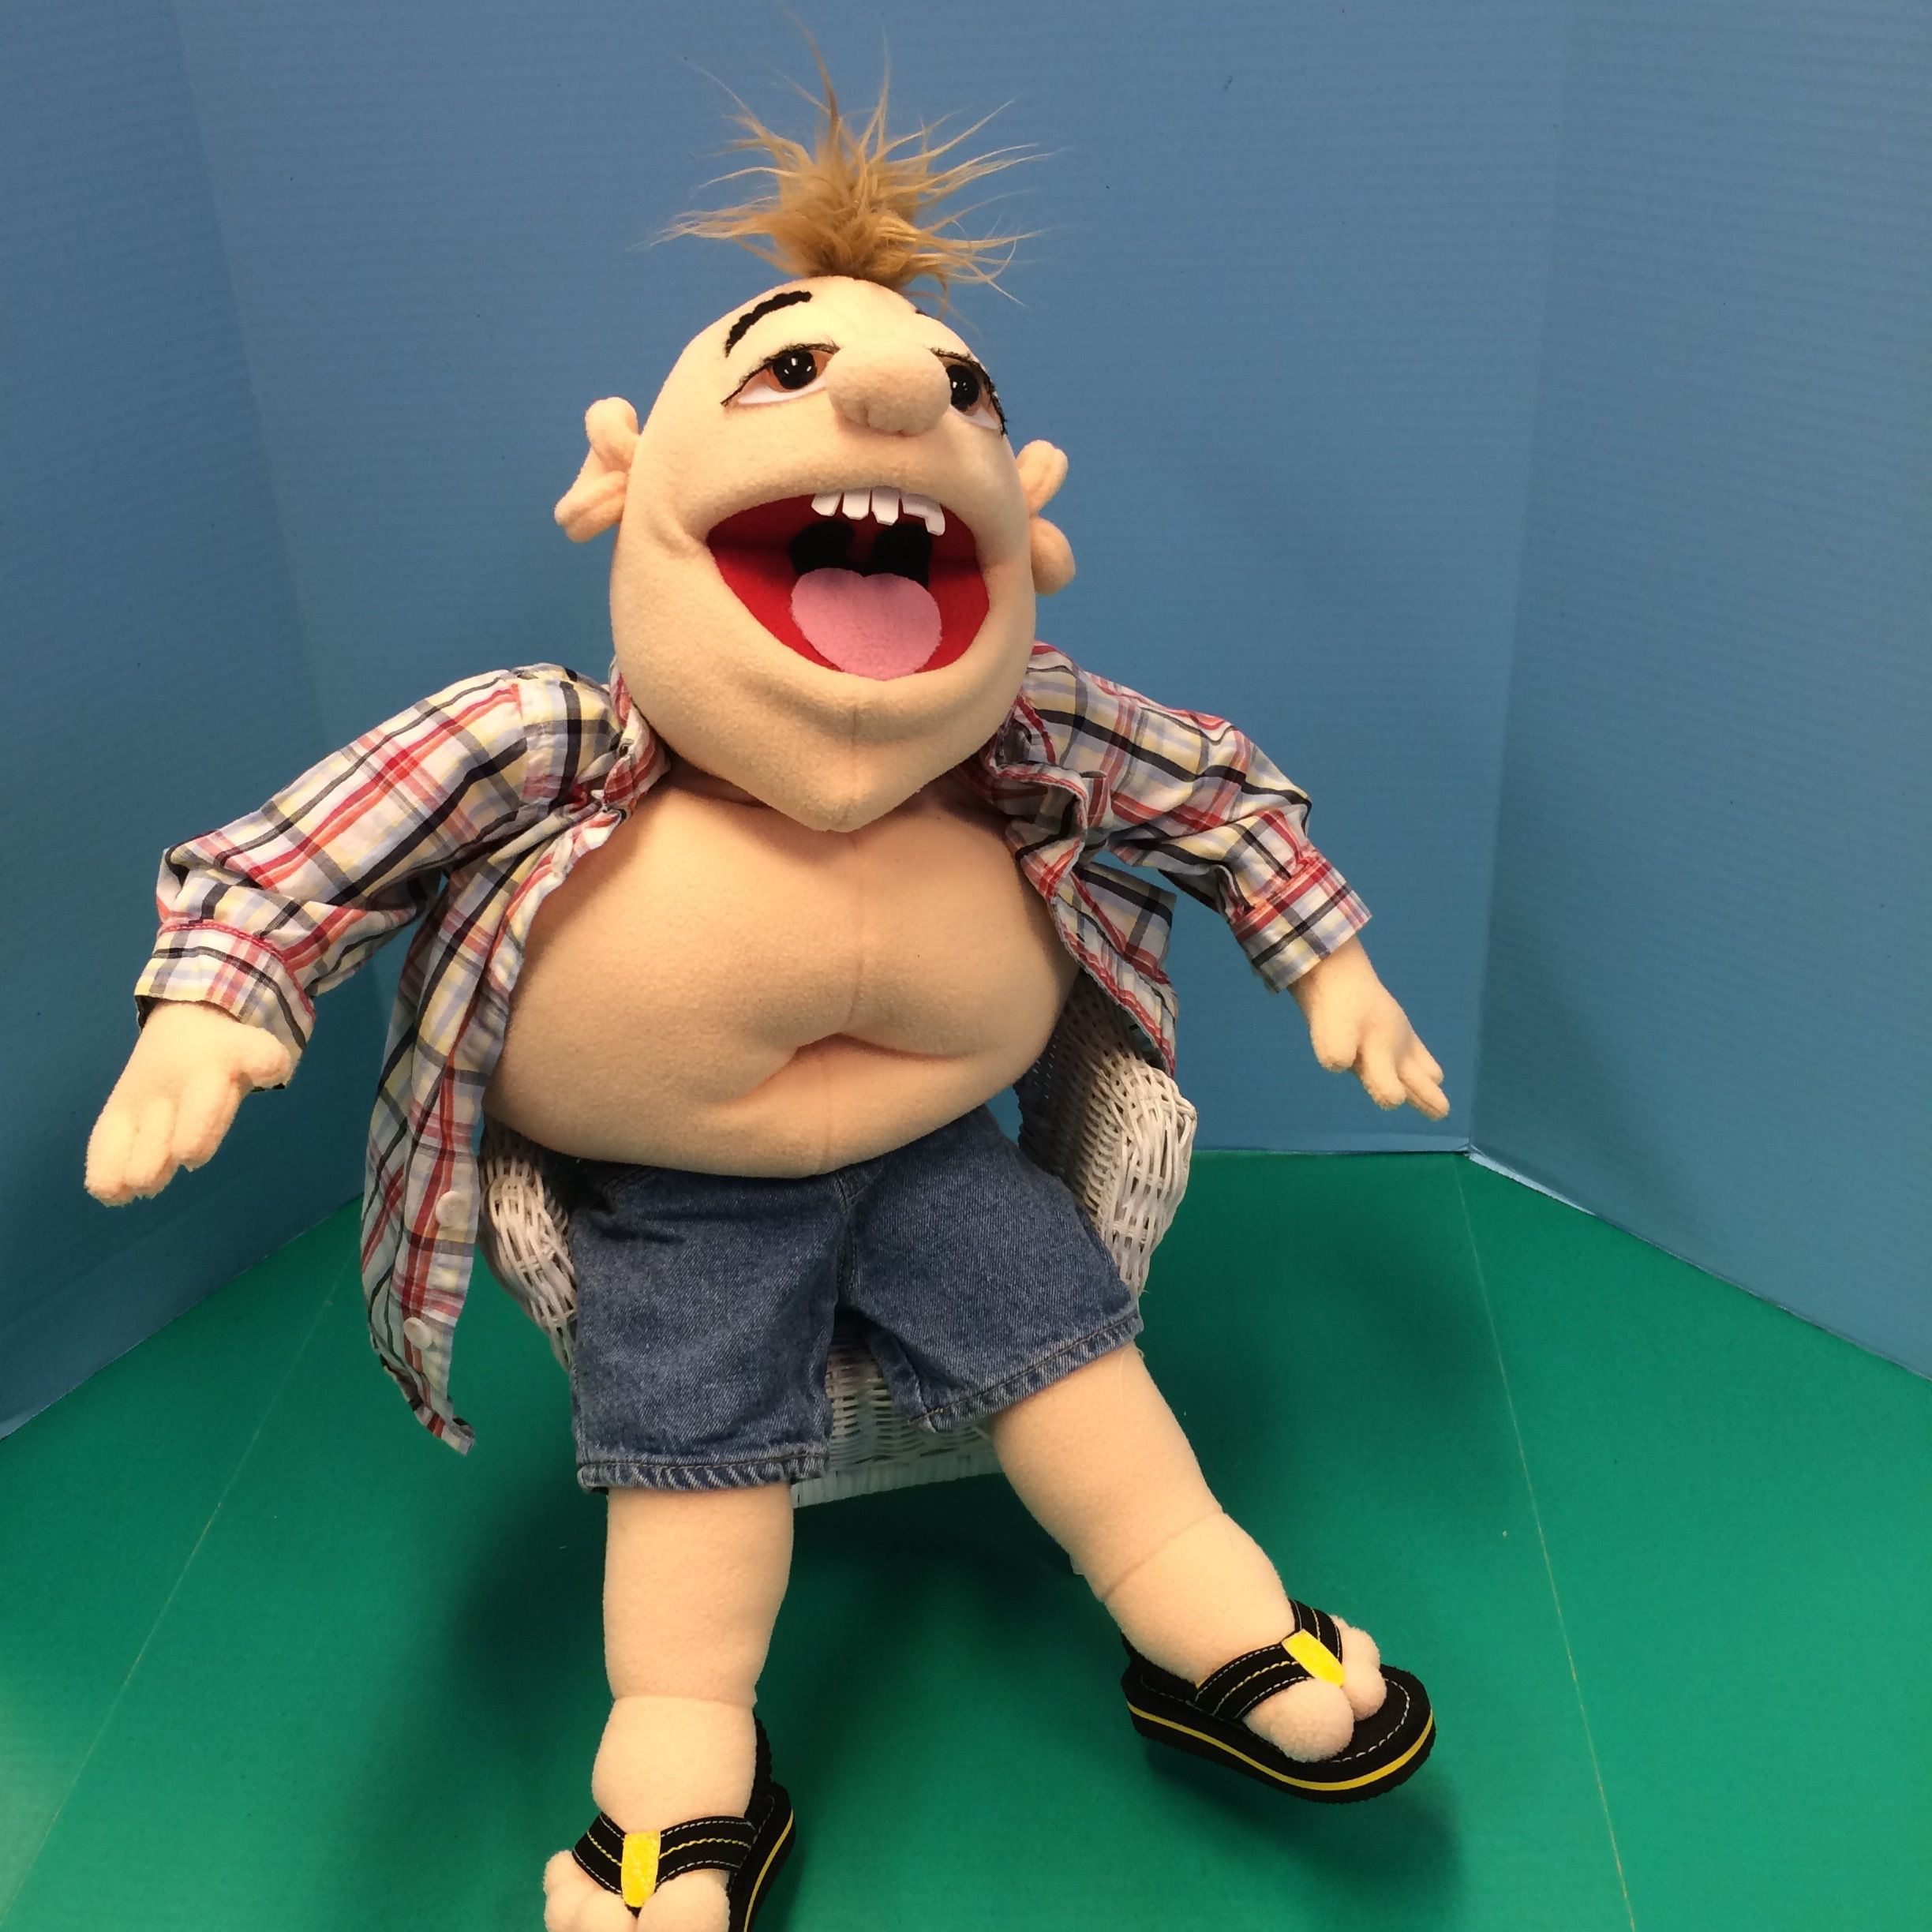 goodman puppet for sale. super mario, the large, puppets, logan, jean sandals goodman puppet for sale